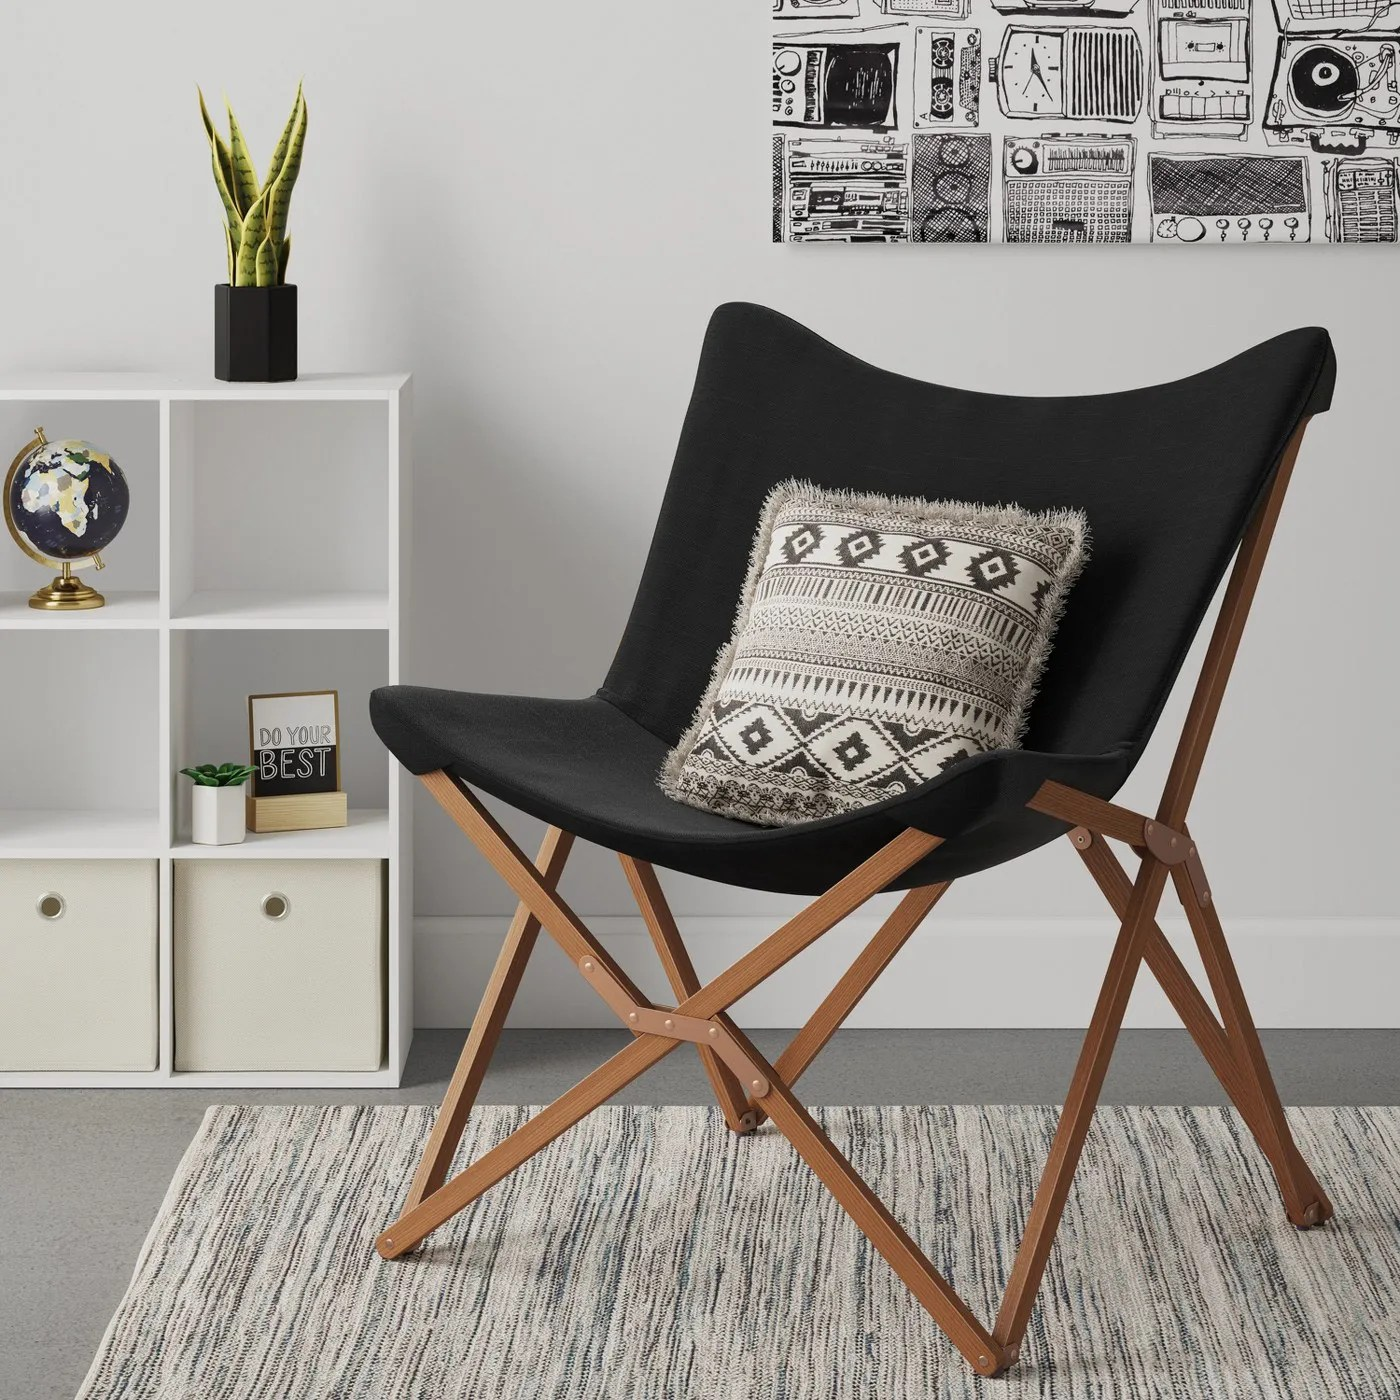 Chairs For Dorm Rooms 12 Best Dorm Room Chairs